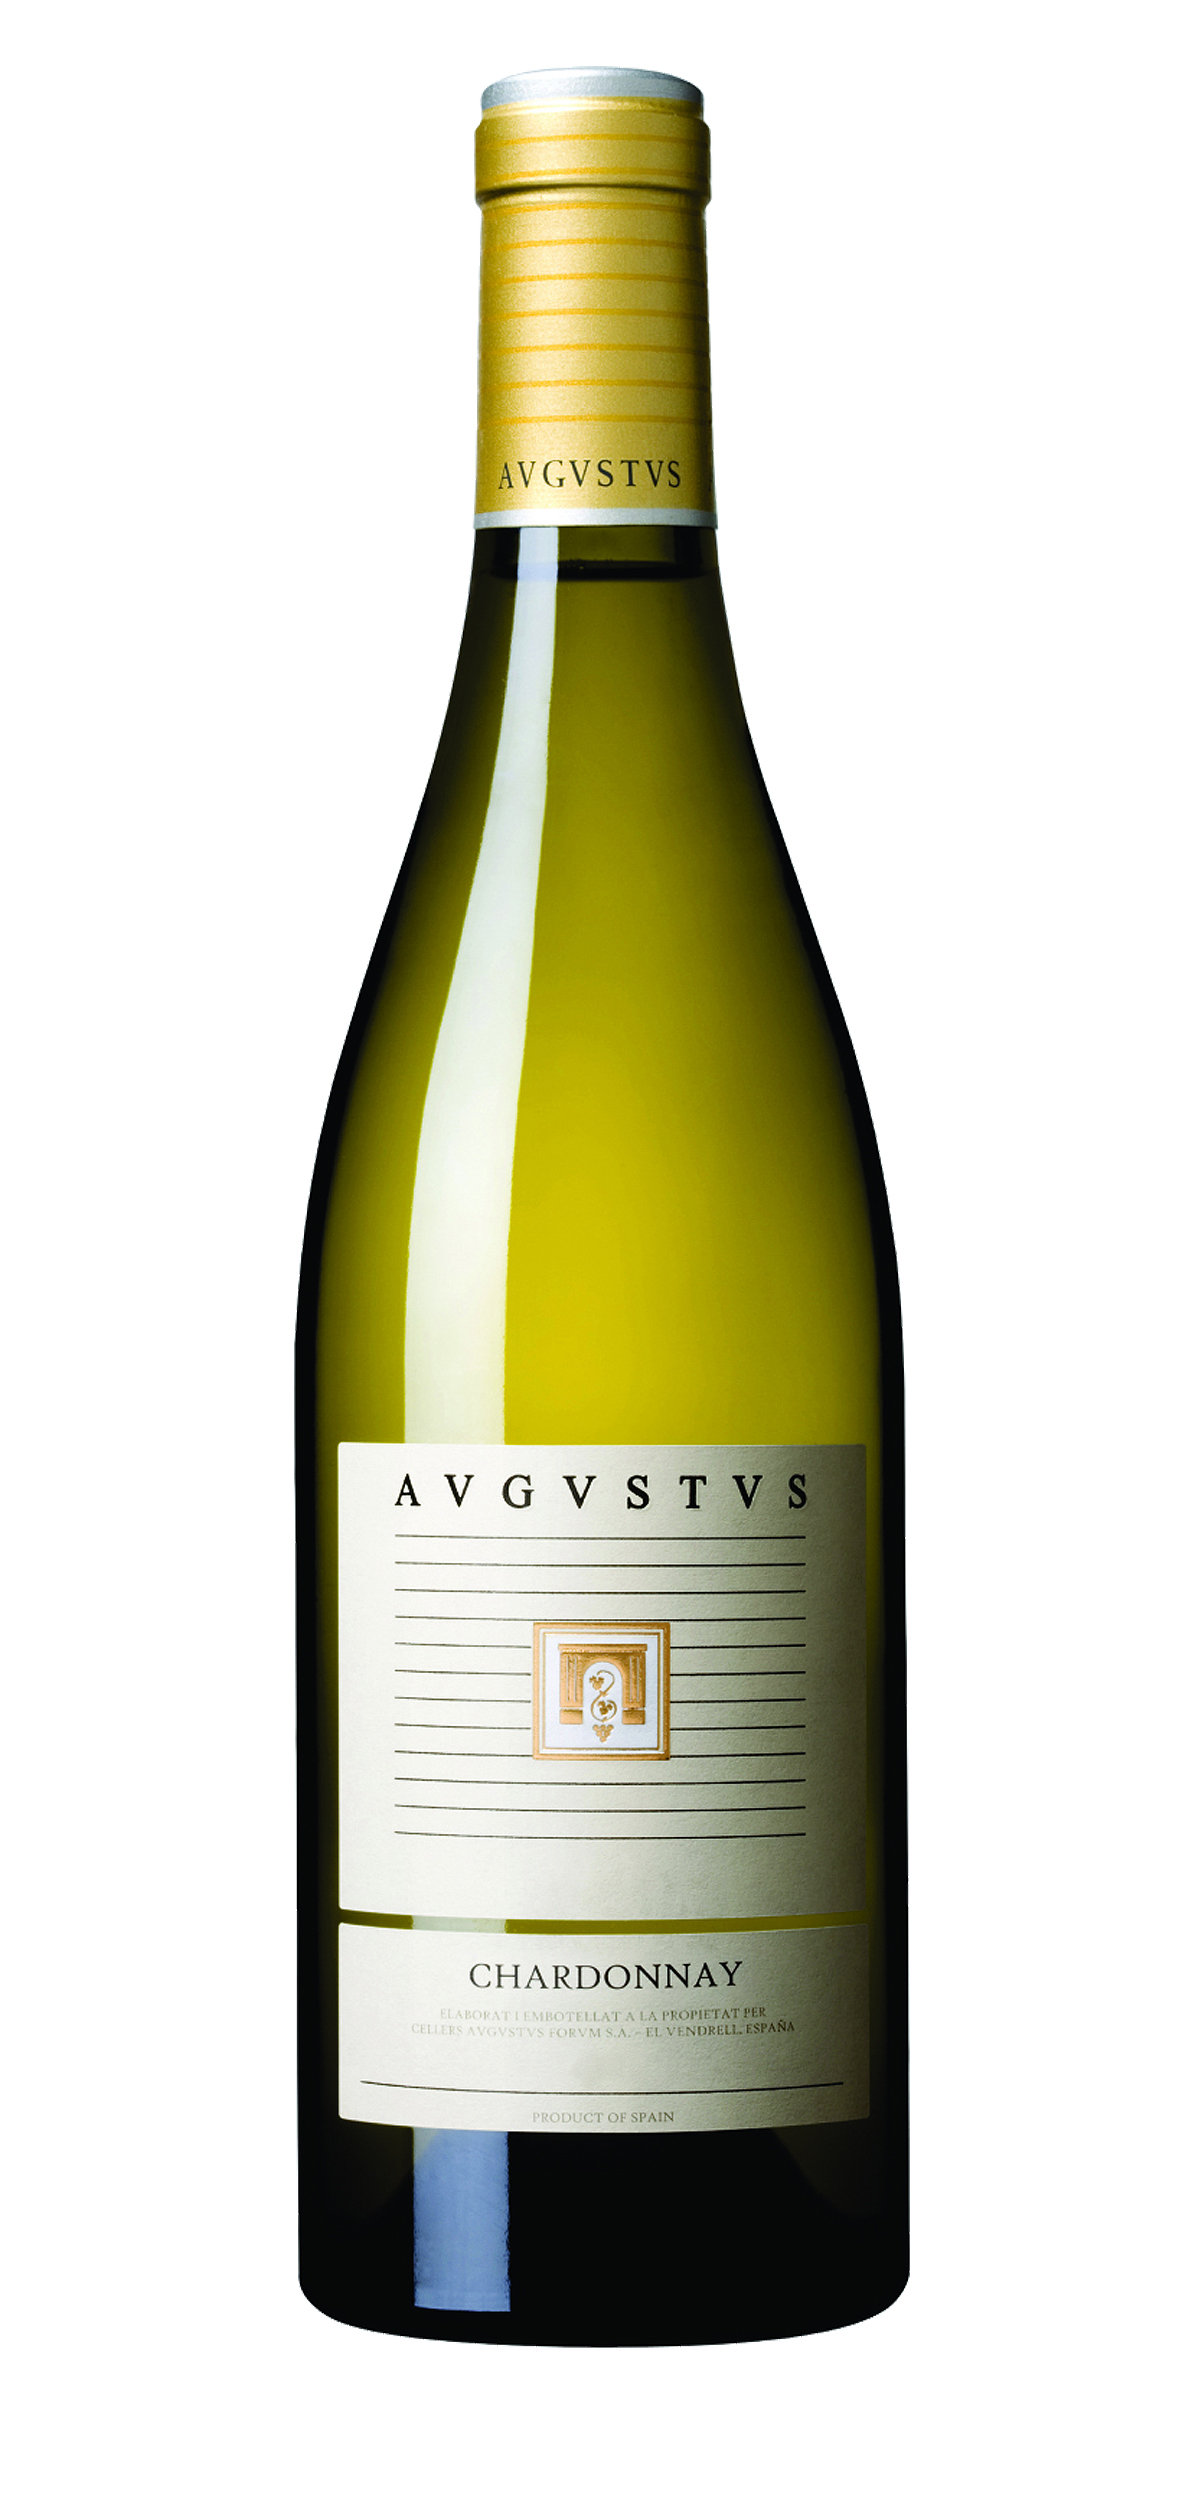 Augustus Chardonnay wine bottle design